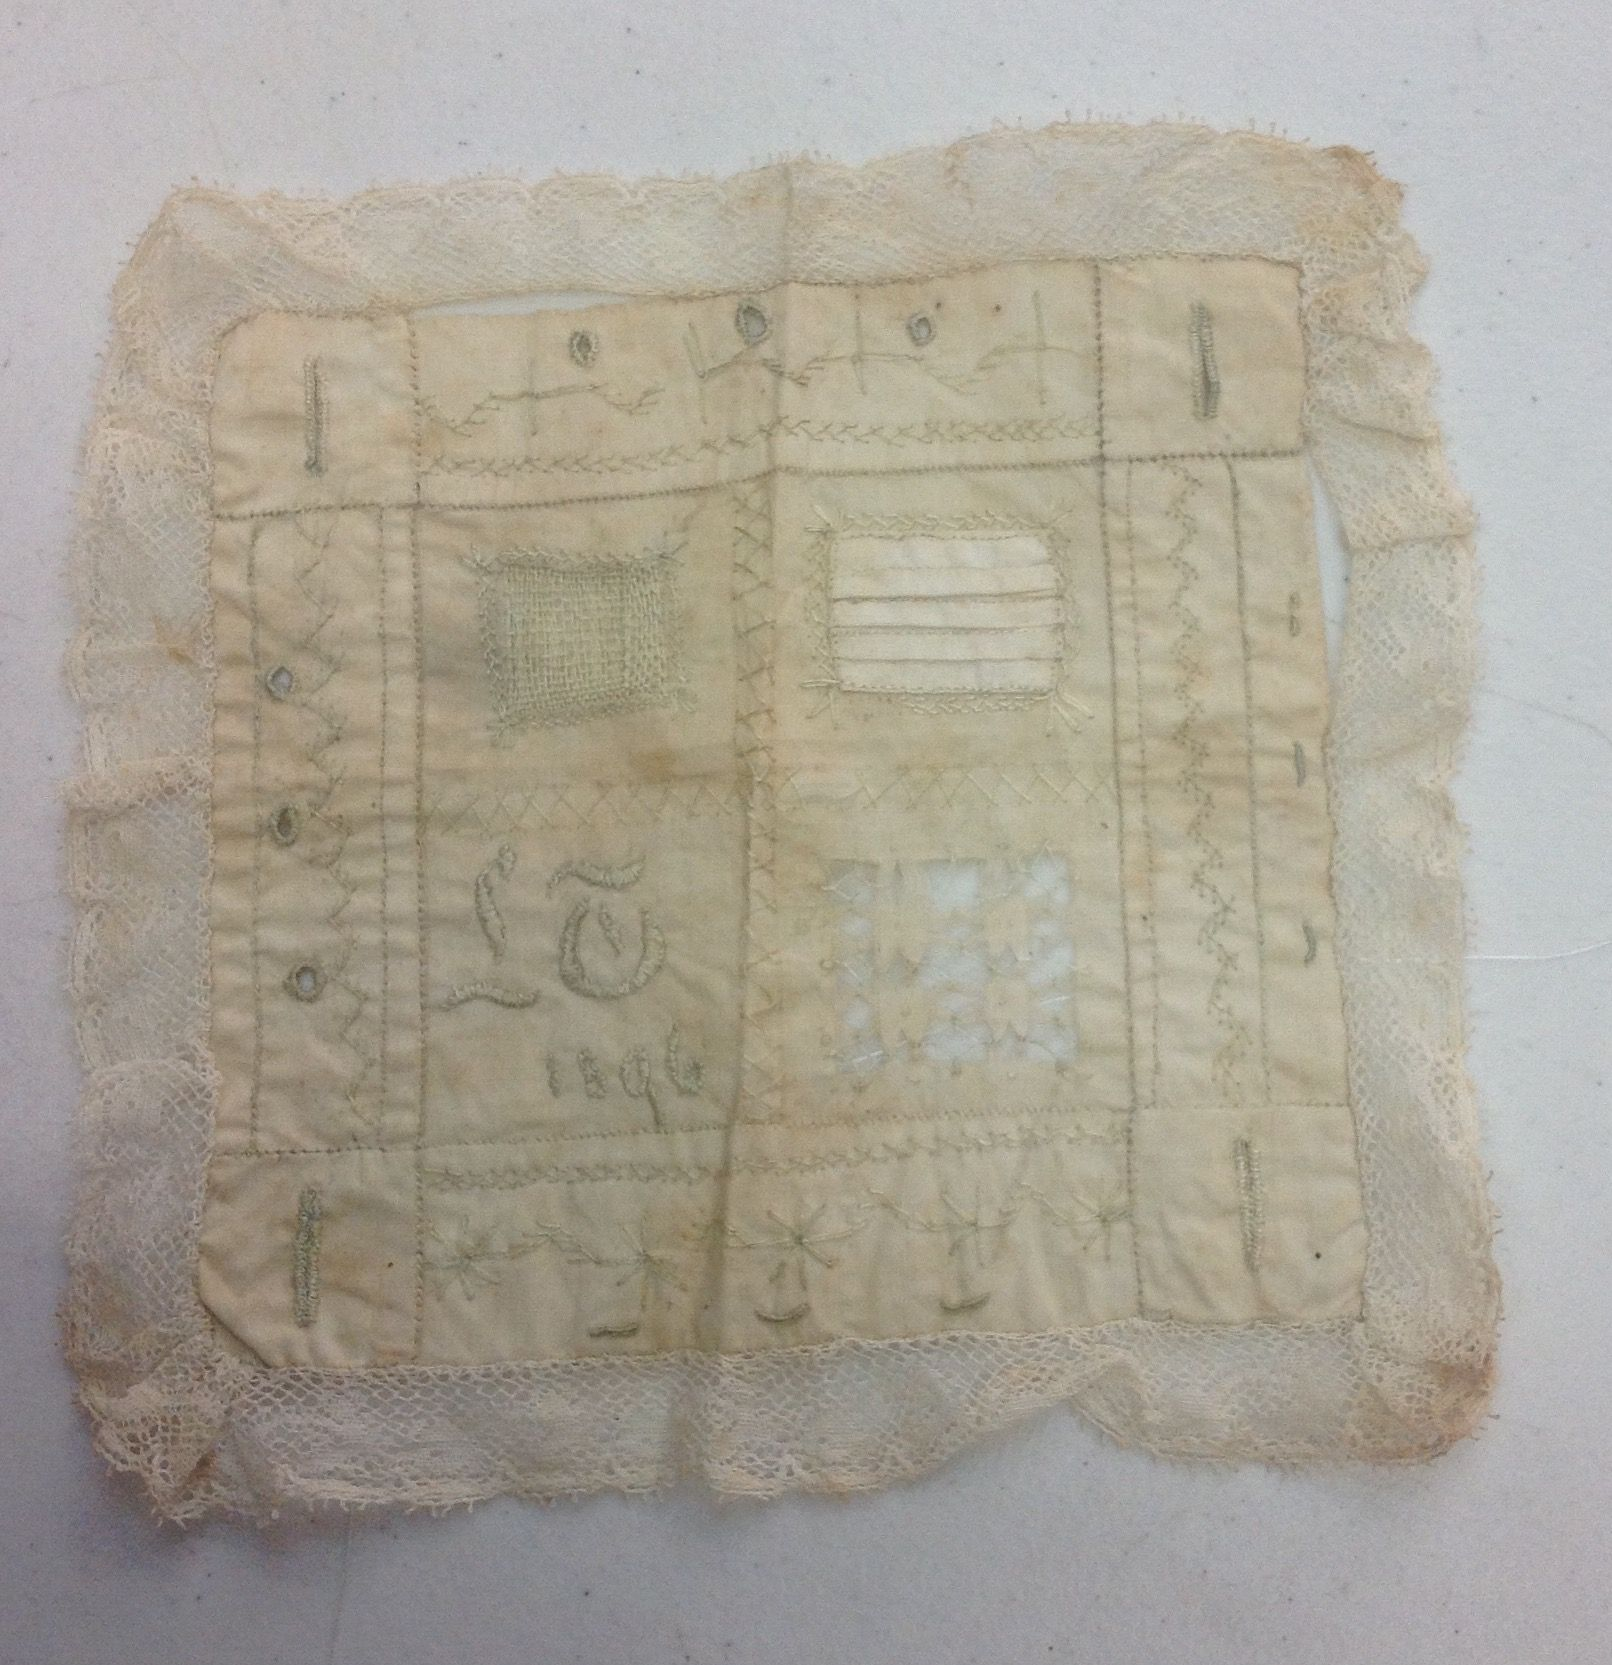 Sampler 1896 stitched by an ancestor of Ruth Spence